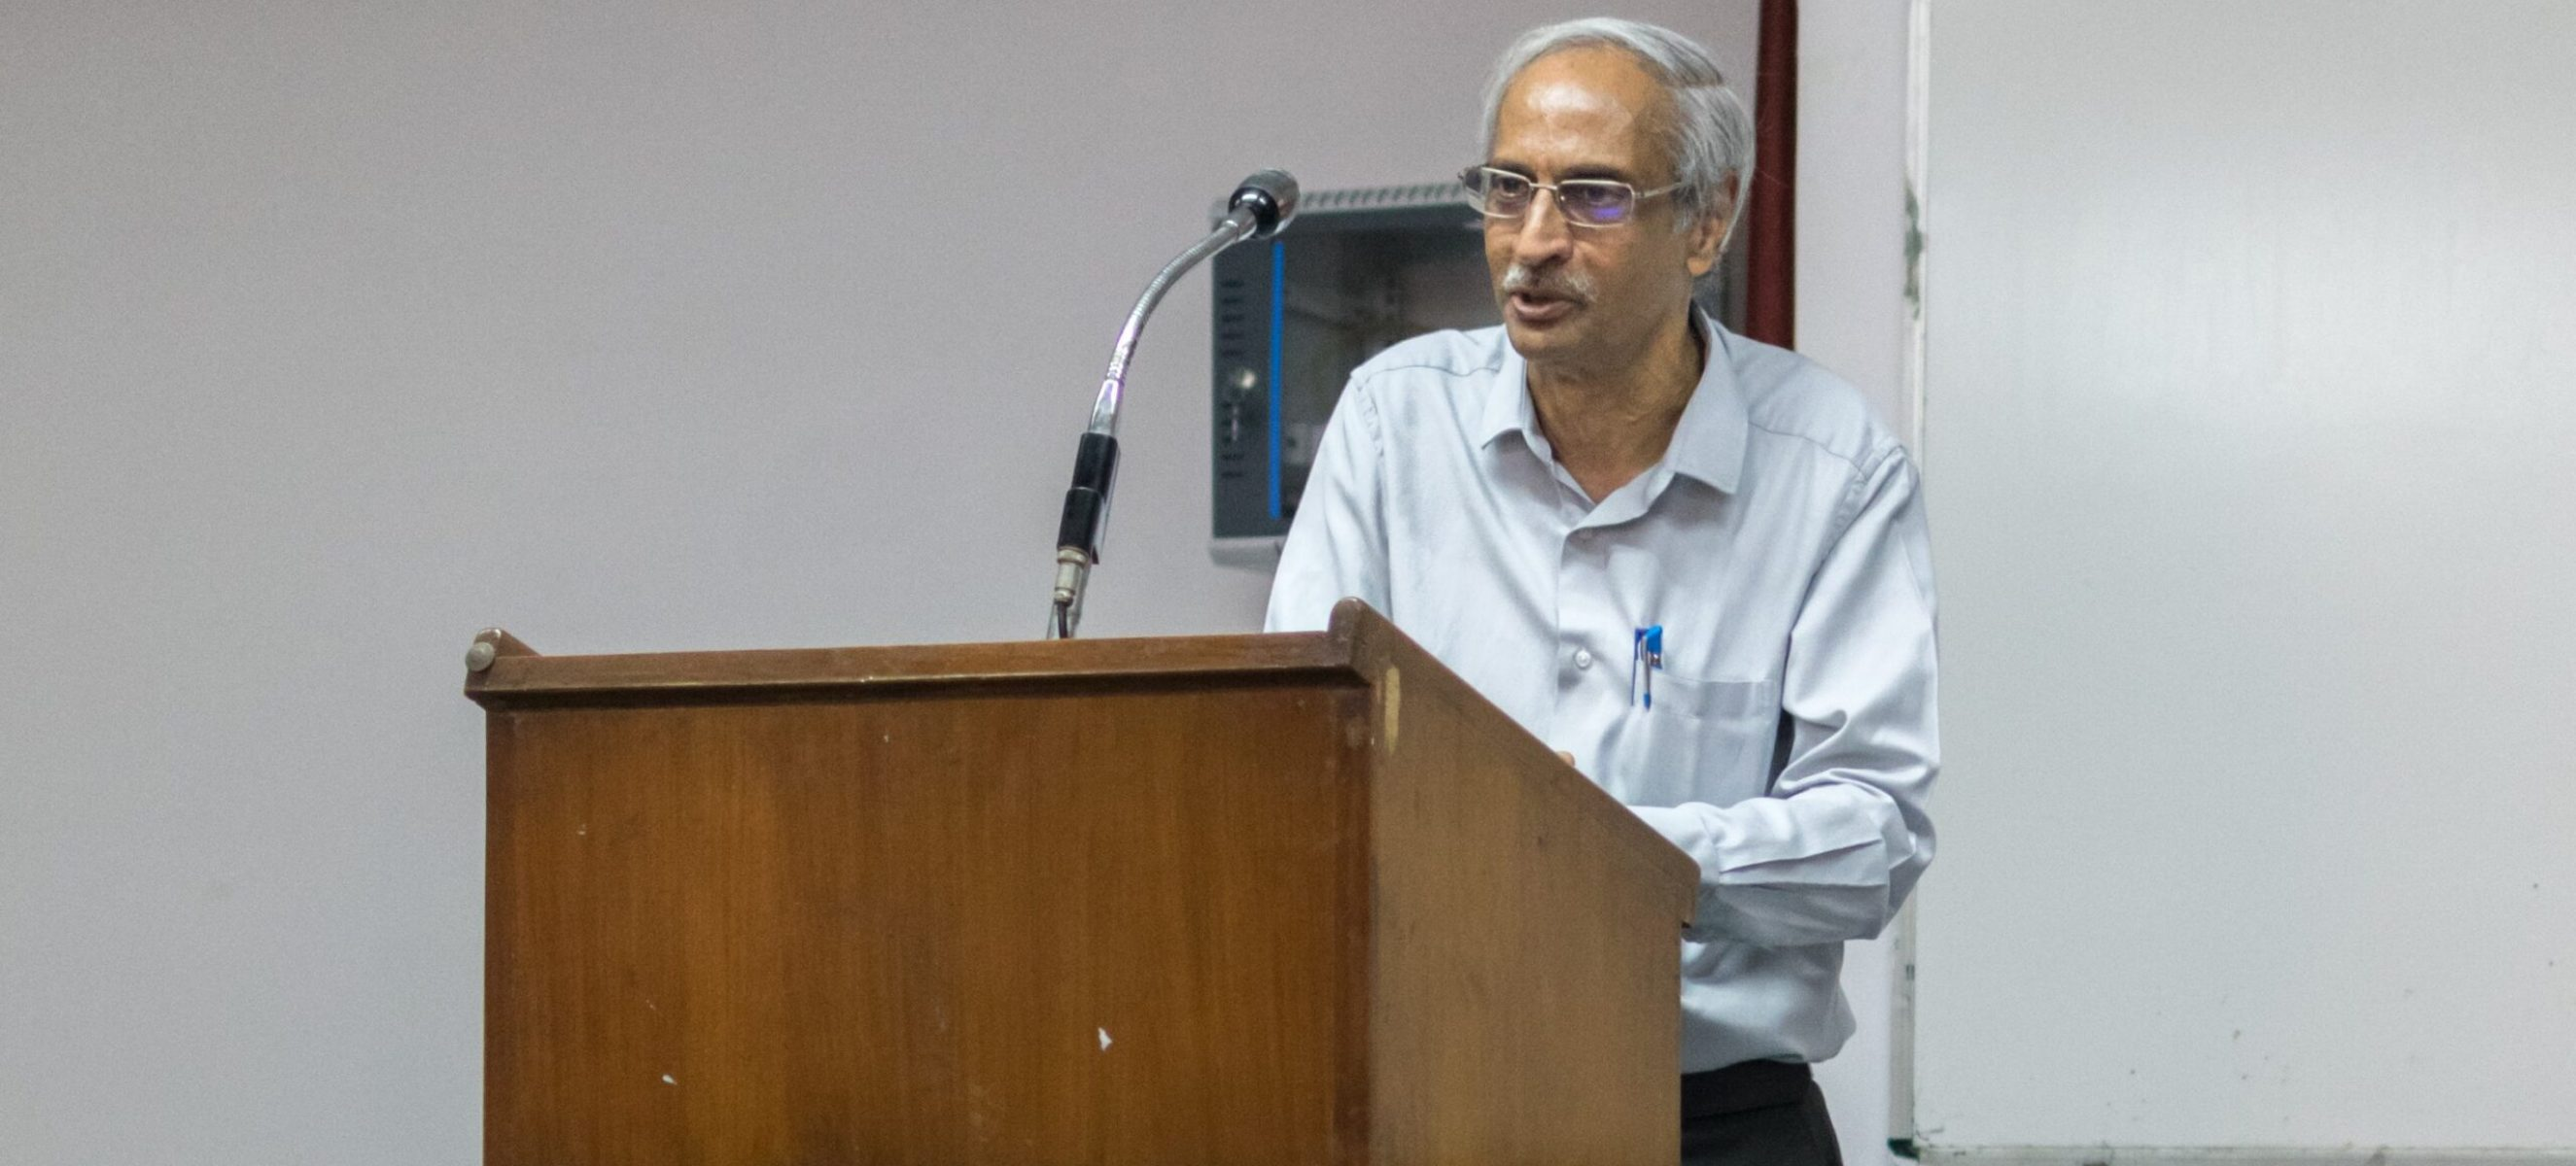 Prof. Guru Row - Our Visionary behind the establishment of Science for Rural India Group